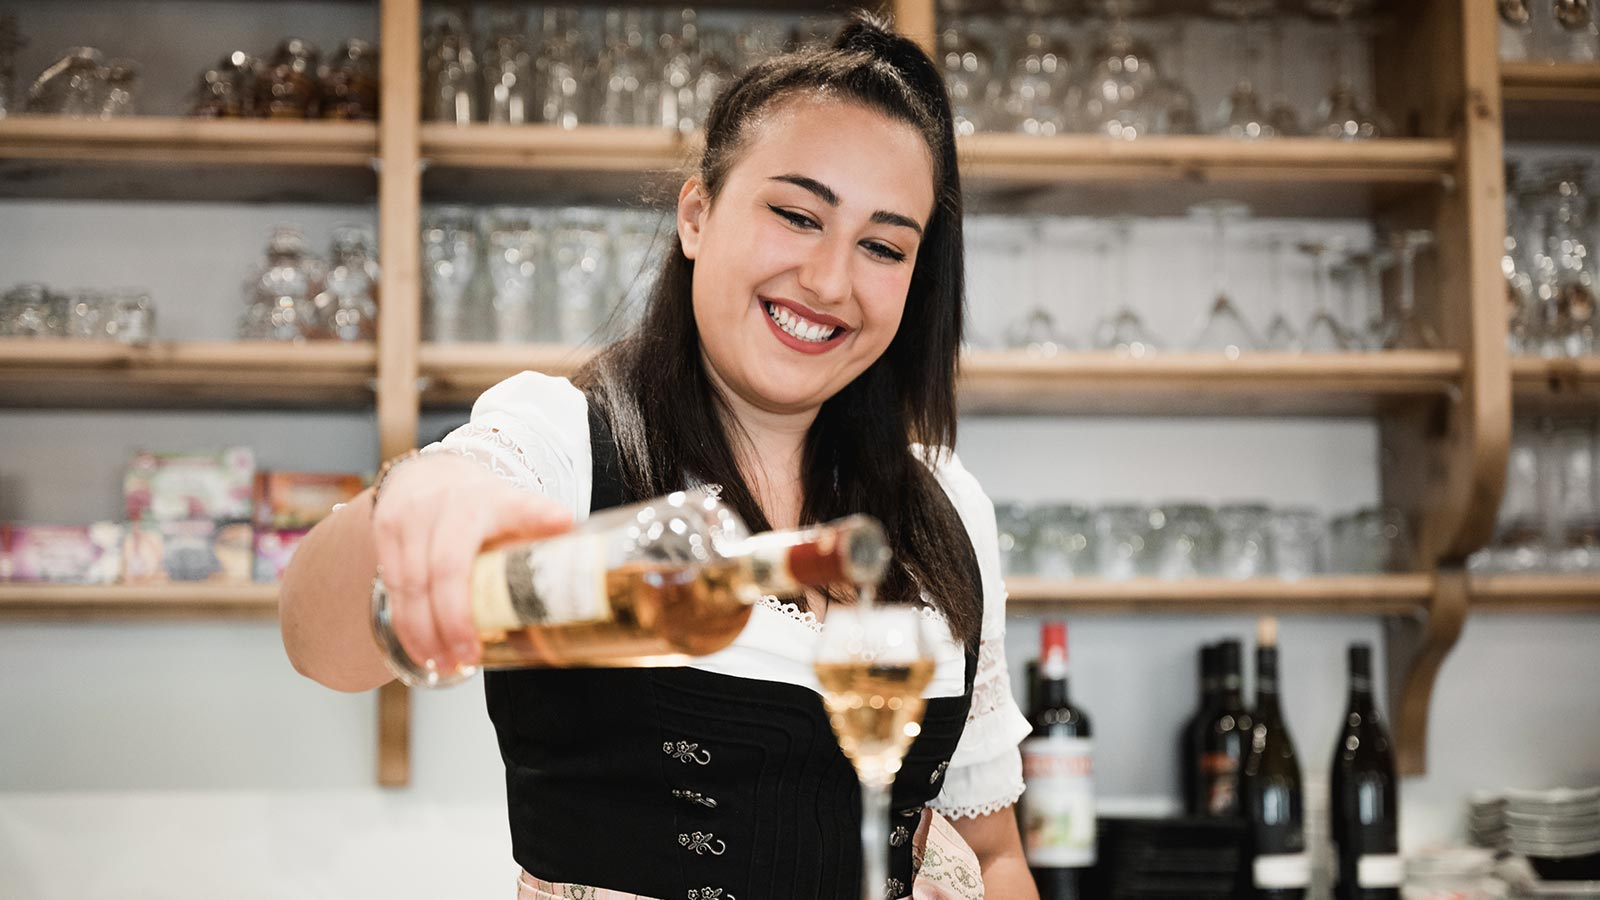 A bartender in traditional dress pours a glass of grappa at the bar counter